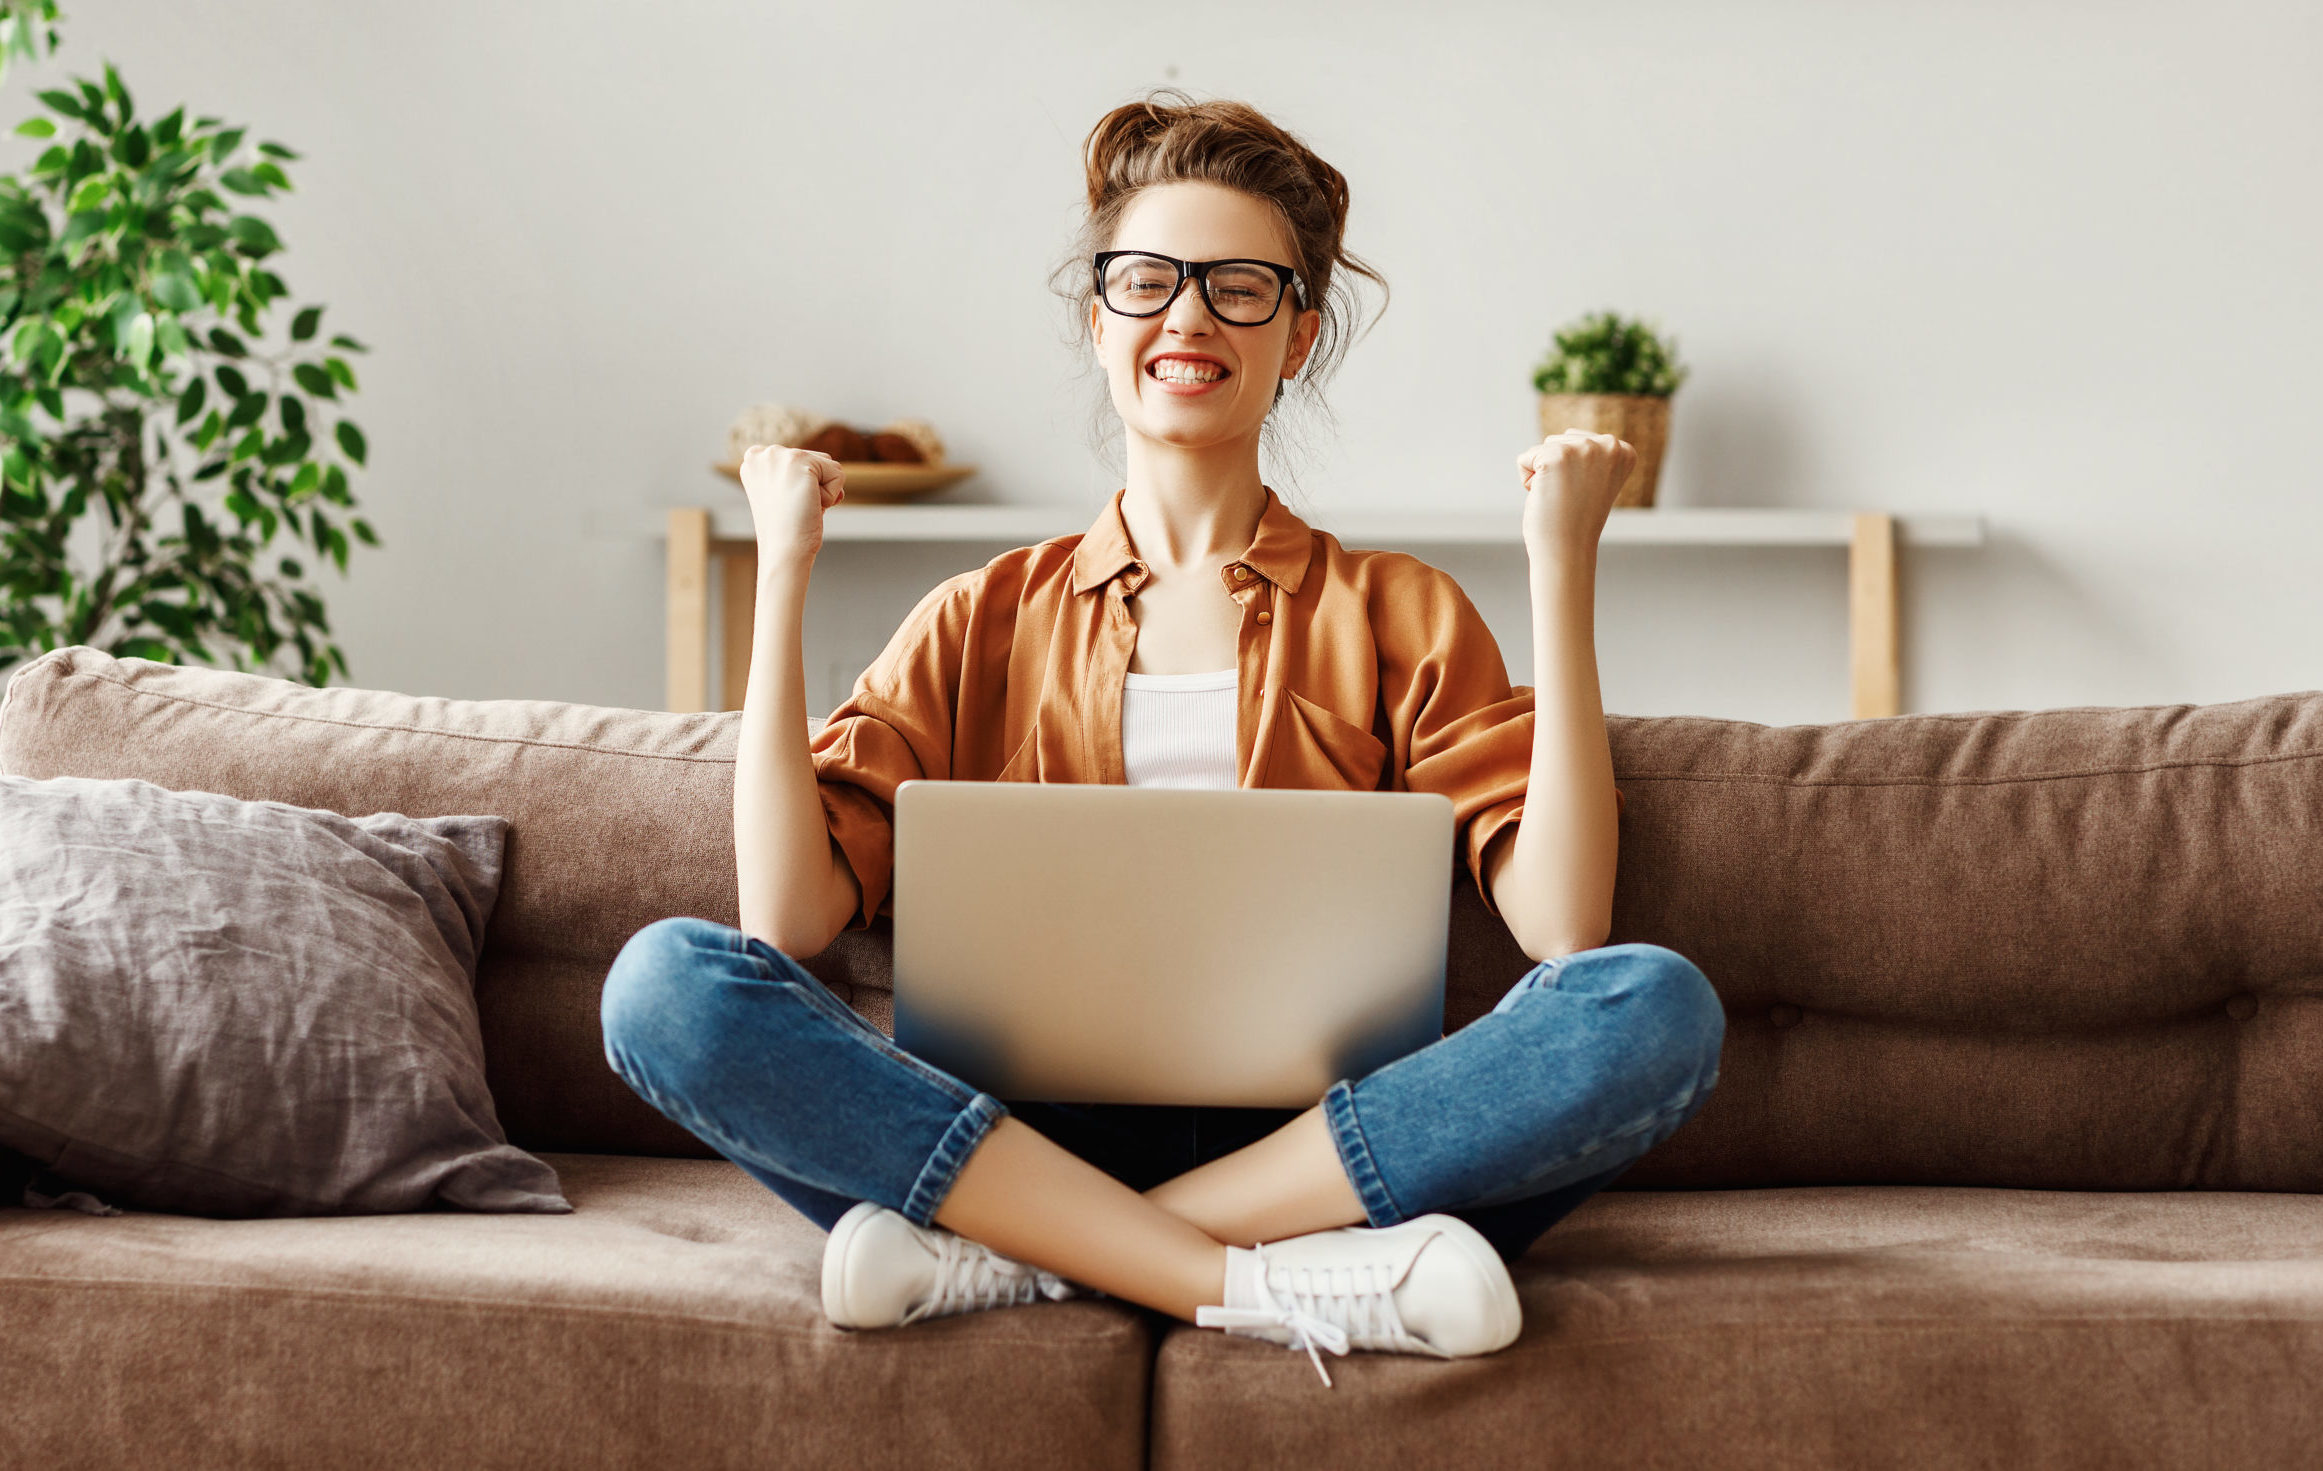 Delighted young woman celebrating victory in online lottery